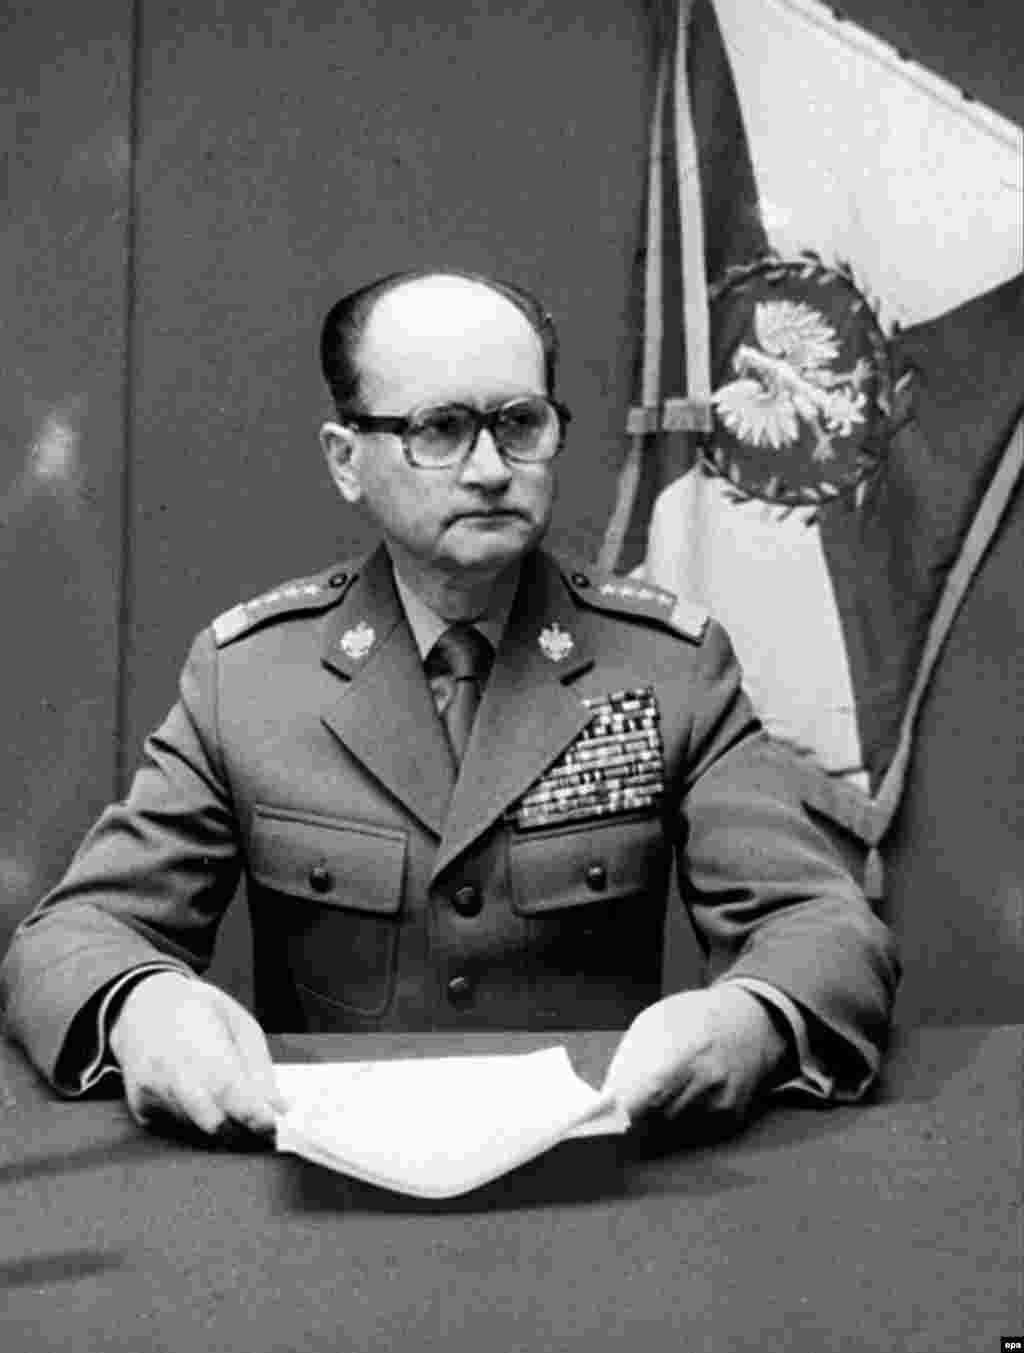 A file photo made available on 25 May shows Jaruzelski announcing martial law in Poland on December 13, 1981. He cited purported evidence of the planning of a coup, including involving Solidarity leaders.